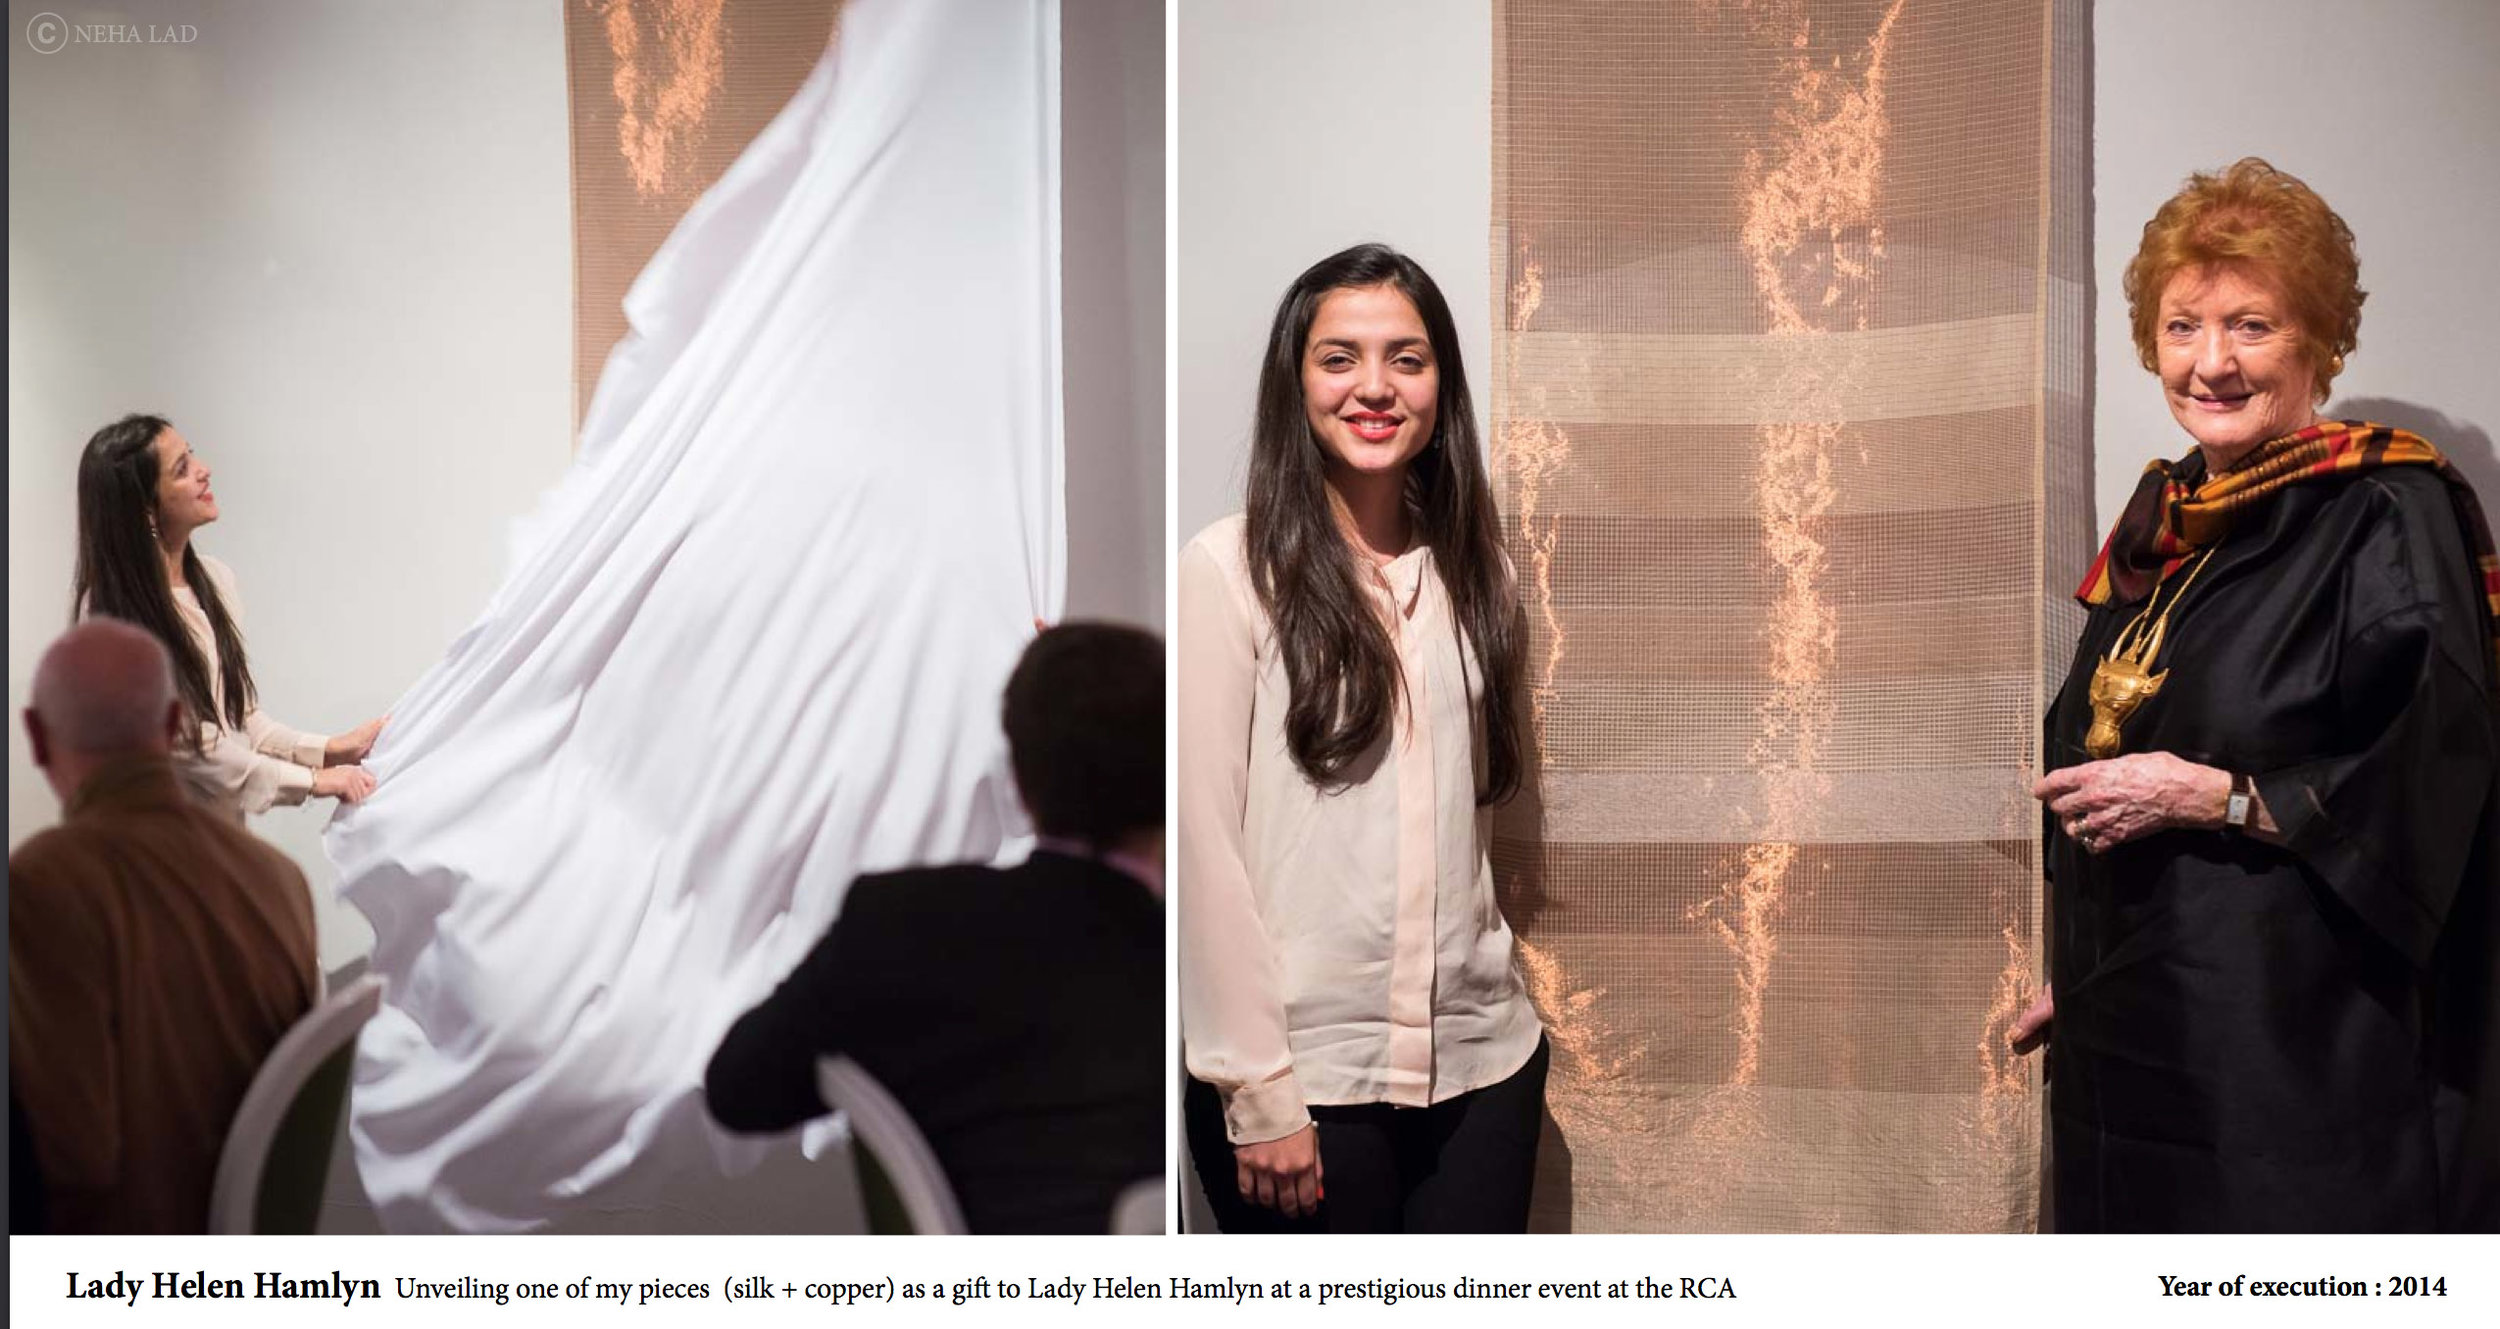 Neha Lad, presents one of her pieces (Silk+Copper) to Lady Helen Hamlyn.